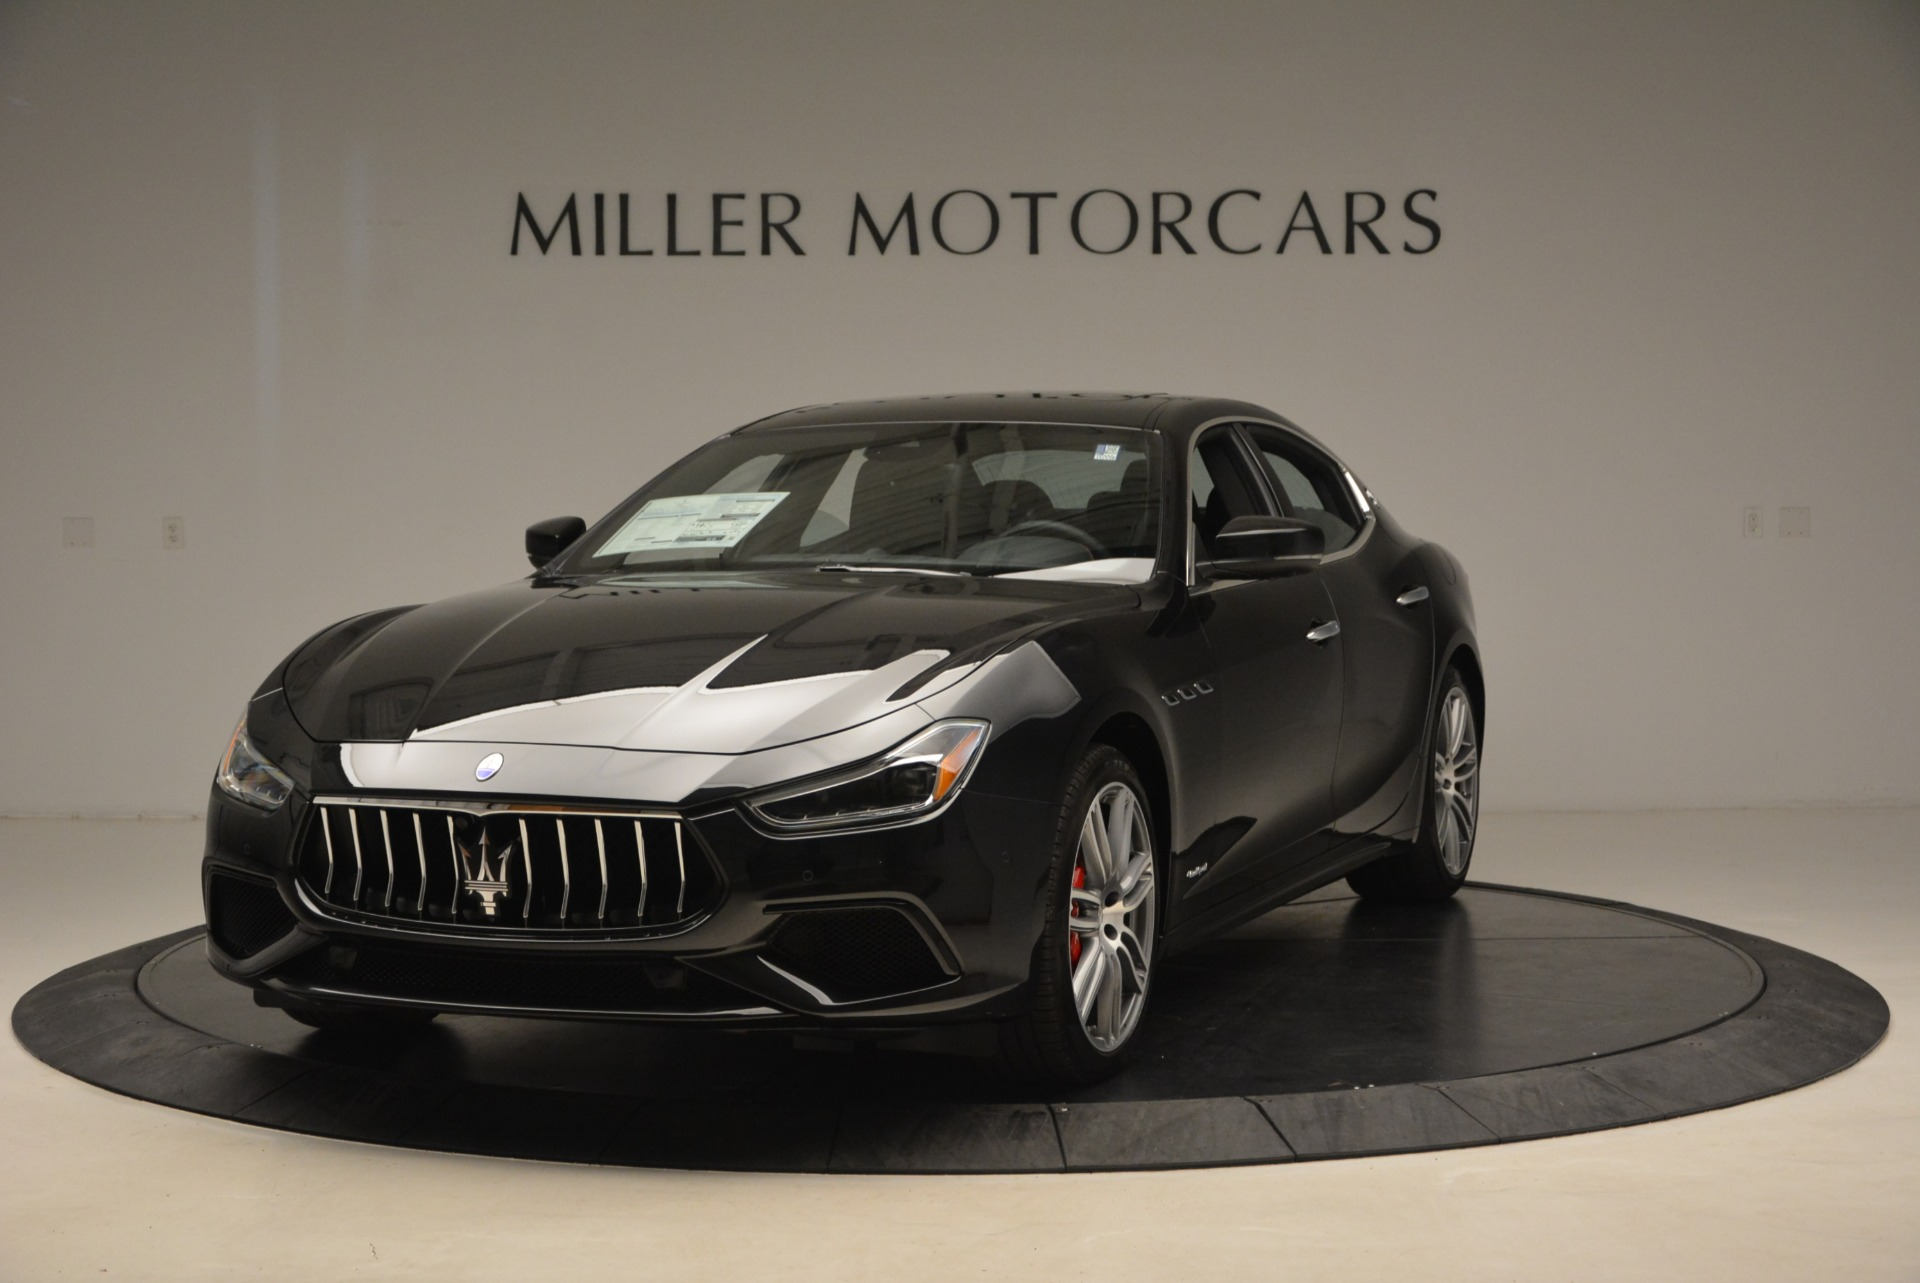 Used 2019 Maserati Ghibli S Q4 GranSport for sale $64,900 at Rolls-Royce Motor Cars Greenwich in Greenwich CT 06830 1